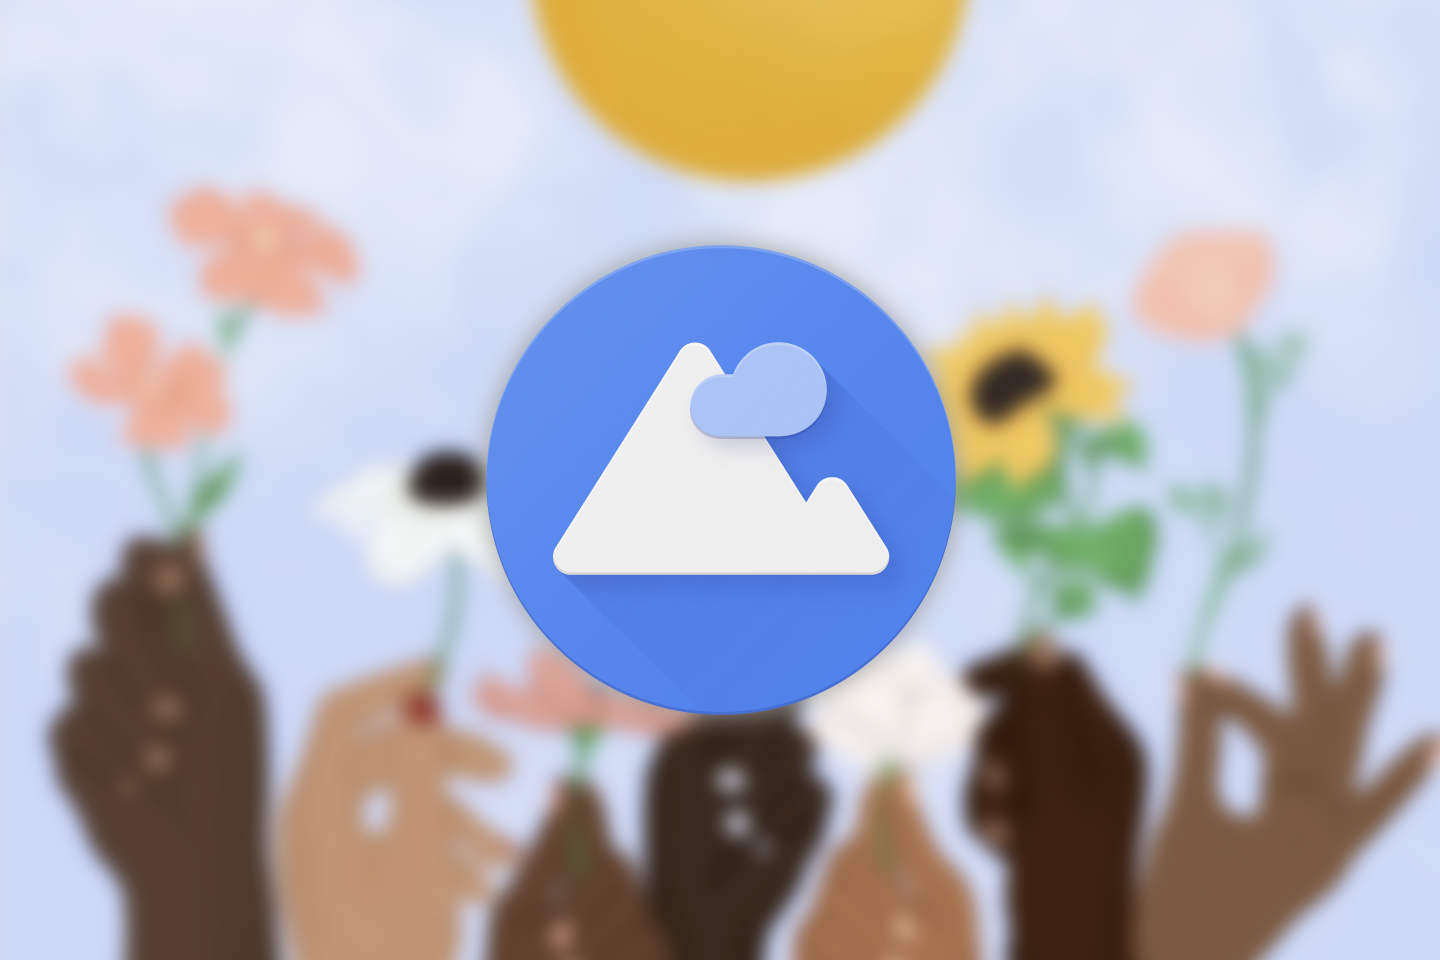 Google celebrates Black History Month with 3 new Pixel wallpapers thumbnail